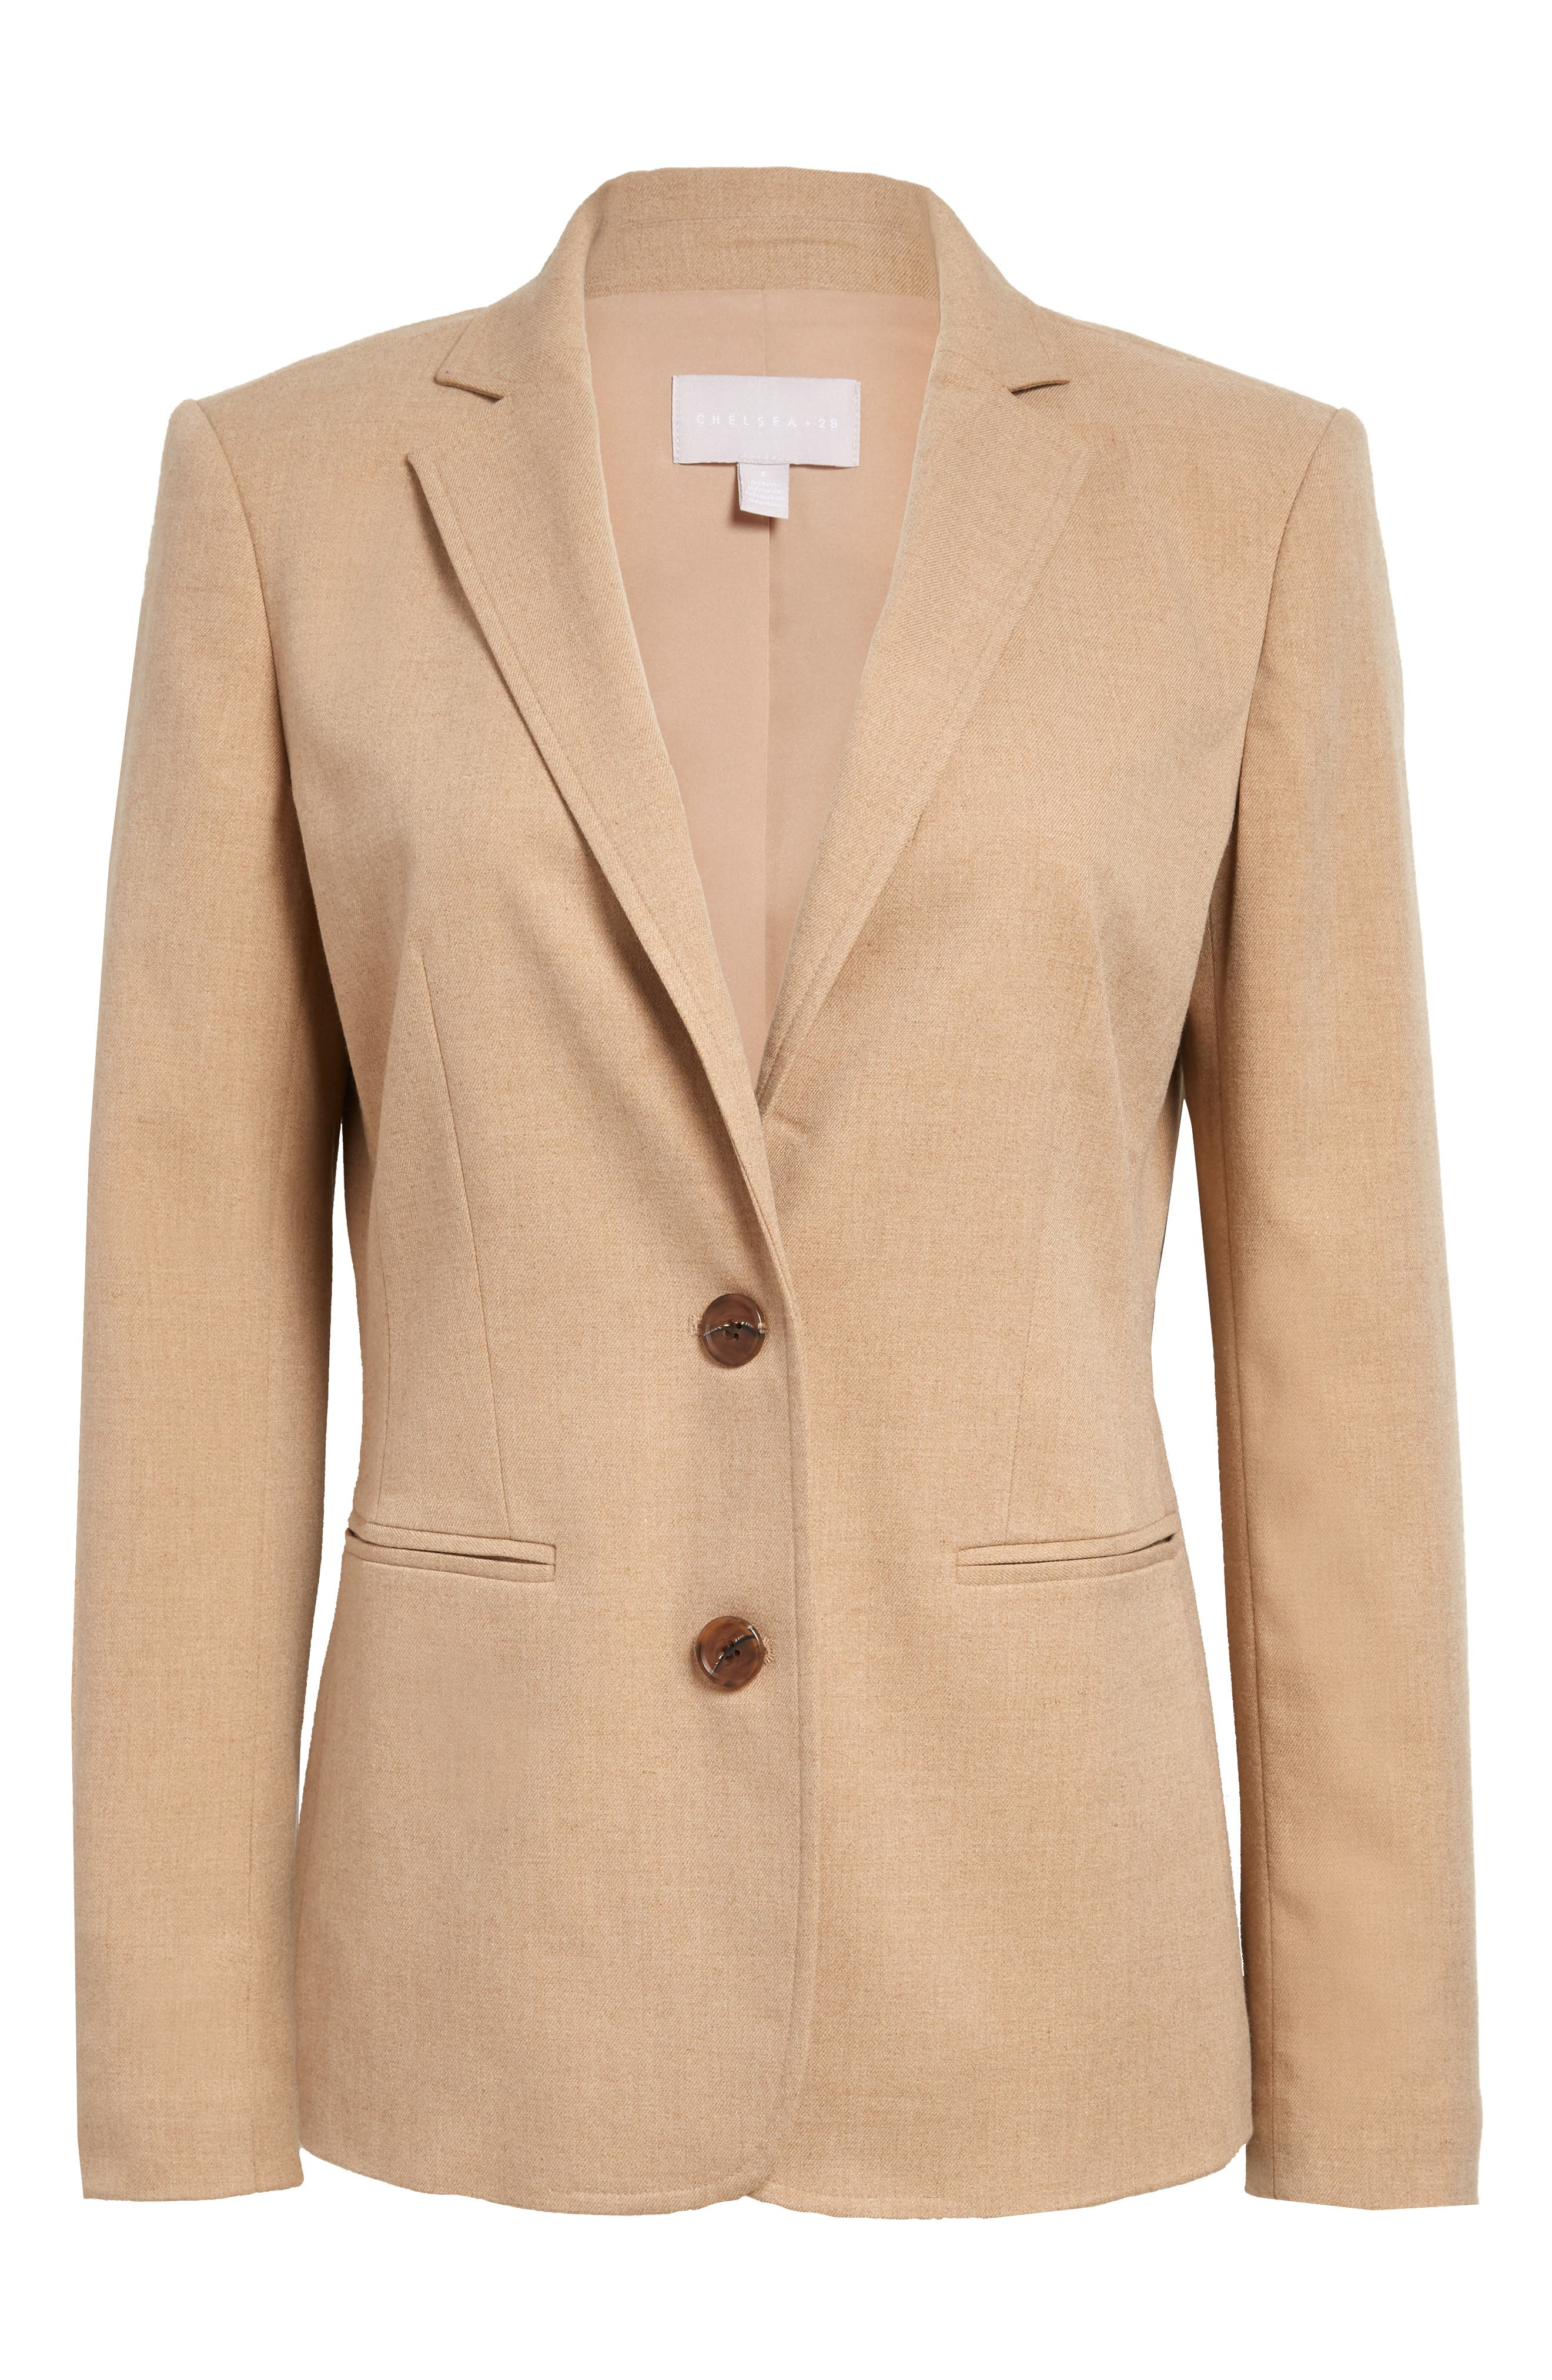 Vintage Coats & Jackets | Retro Coats and Jackets Womens Chelsea28 Twill Blazer Size XX-Large - Brown $129.00 AT vintagedancer.com